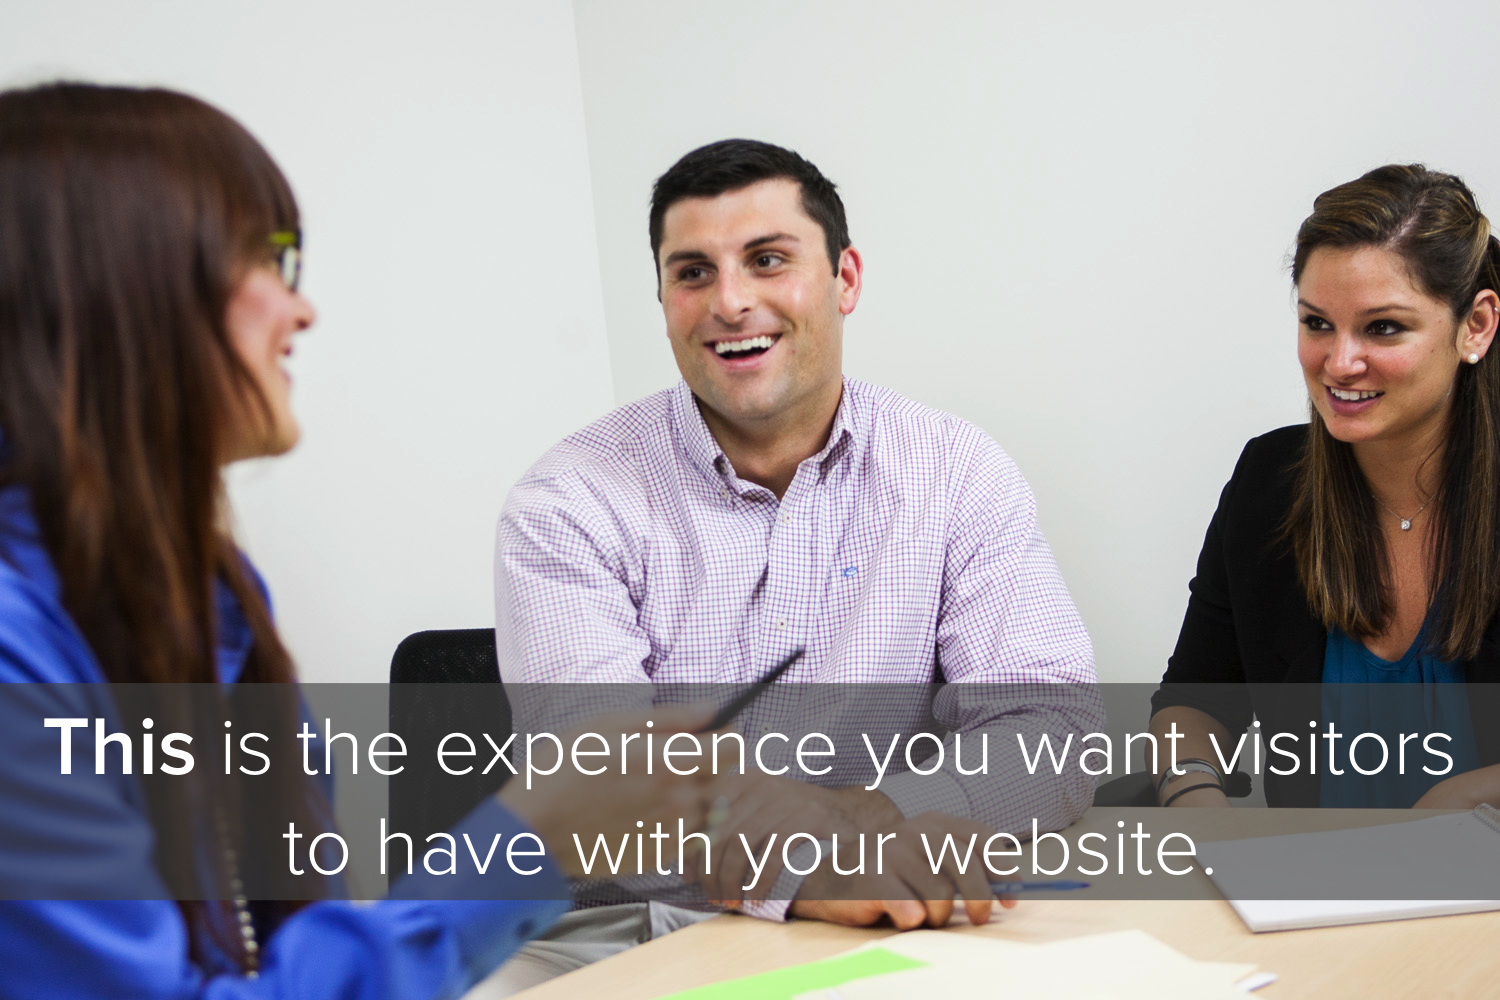 Want More Leads? Get a Responsive Website